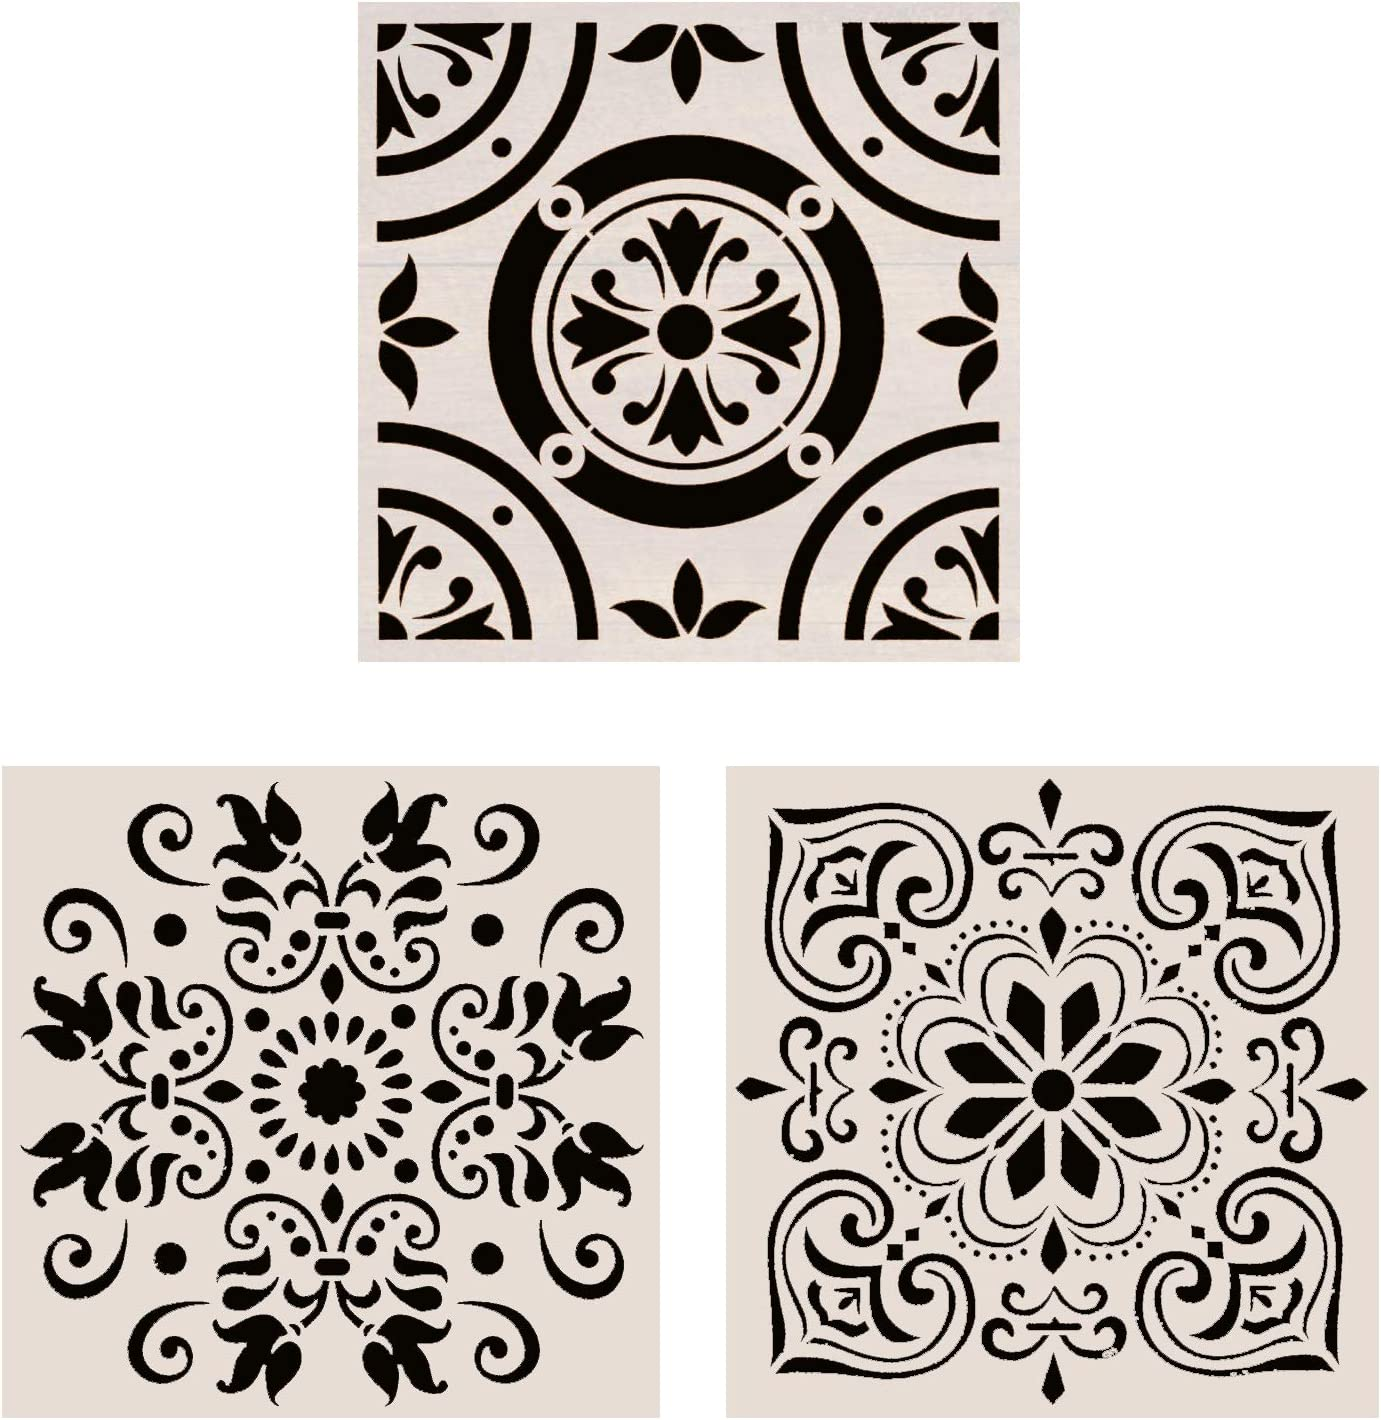 Lindin Pack of 3 Tile Stencil 12x12 Inch - Large Stencils Painting for Floor Wall Furniture Fabric Wood - Reusable Art Mandala Stencils Painting (Style 1)